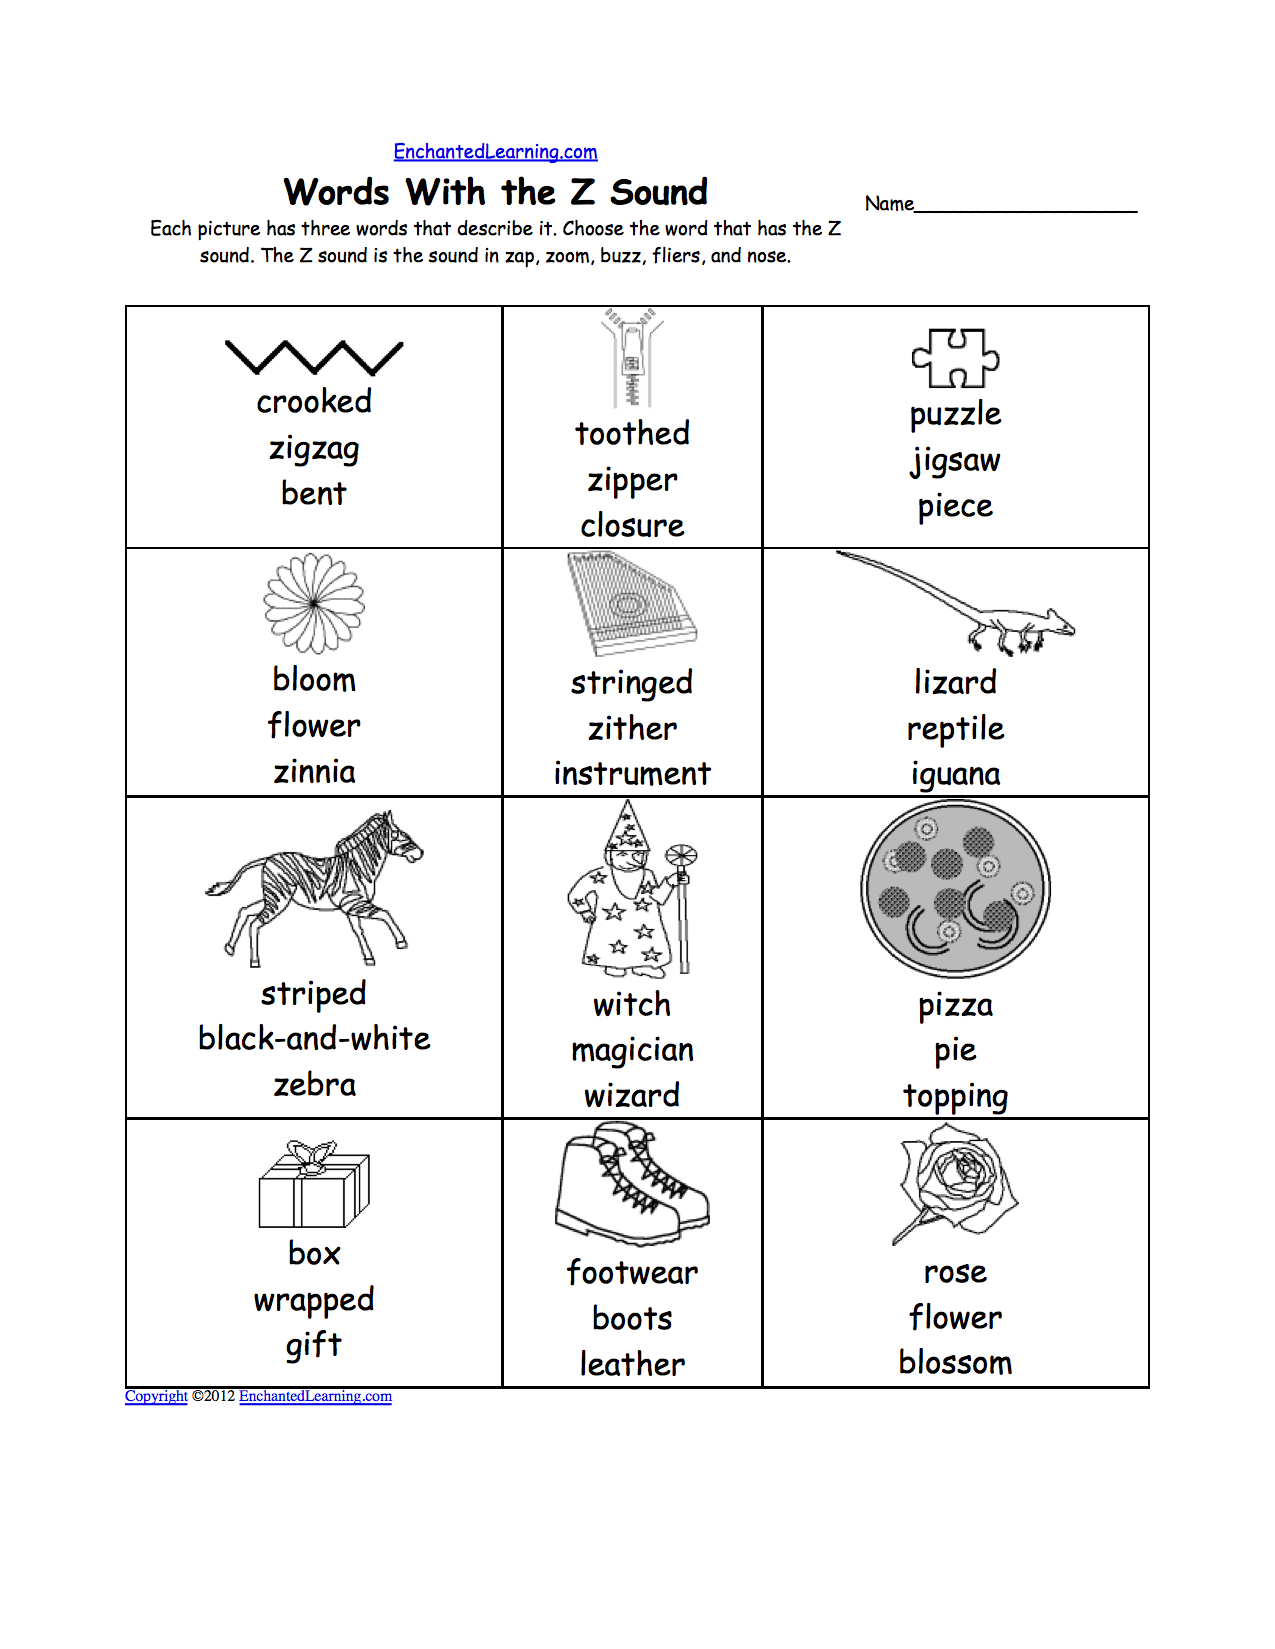 Proatmealus  Surprising Phonics Worksheets Multiple Choice Worksheets To Print  With Hot Phonics Worksheets Multiple Choice Worksheets To Print  Enchantedlearningcom With Astounding Place Value Addition Worksheets Also Volume Of A Cylinder Worksheets In Addition Multiply By  Worksheet And  Tax Computation Worksheet As Well As Decimal Models Worksheet Additionally  More And  Less Worksheets From Enchantedlearningcom With Proatmealus  Hot Phonics Worksheets Multiple Choice Worksheets To Print  With Astounding Phonics Worksheets Multiple Choice Worksheets To Print  Enchantedlearningcom And Surprising Place Value Addition Worksheets Also Volume Of A Cylinder Worksheets In Addition Multiply By  Worksheet From Enchantedlearningcom